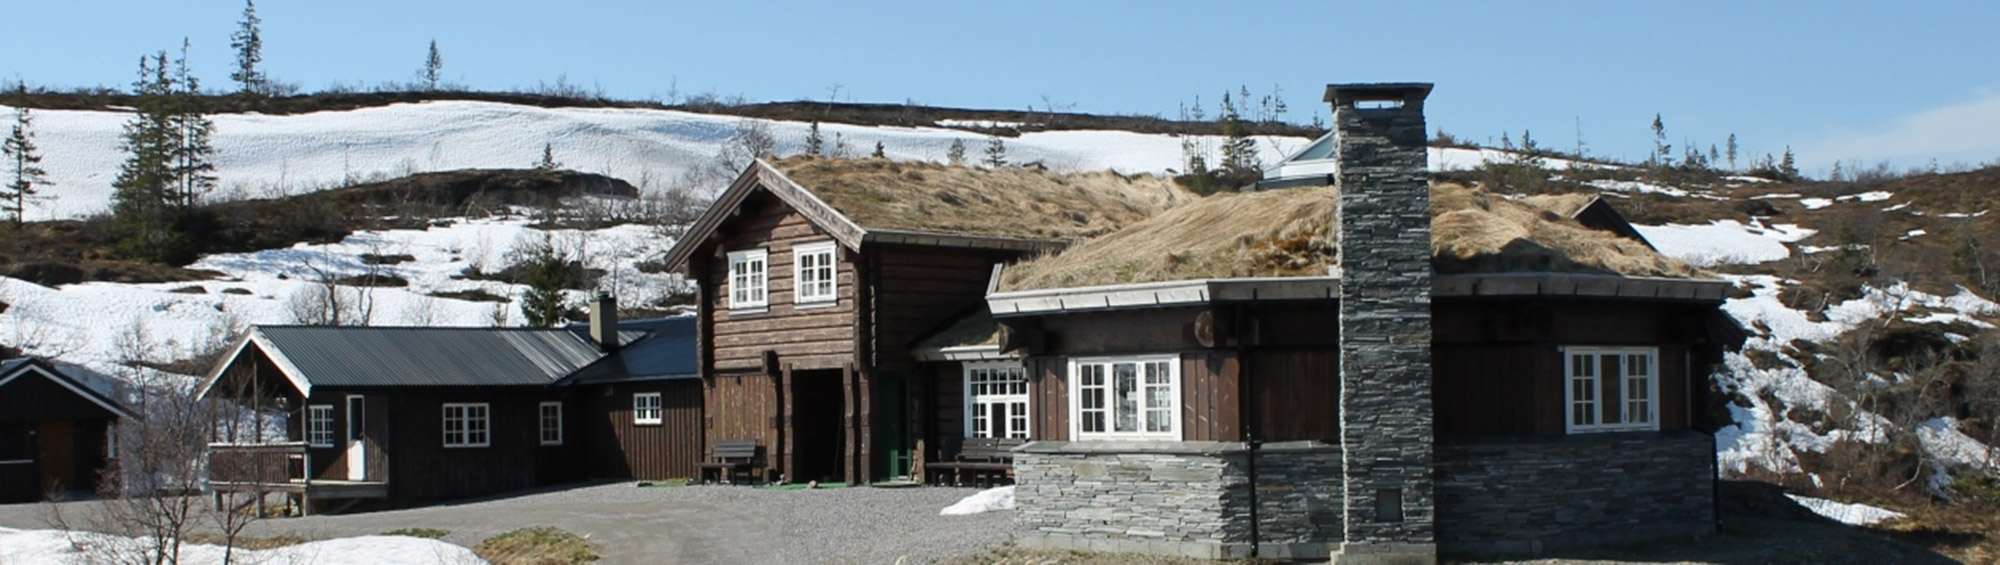 Ismenningen Lodge & Cabin rental - viewed from the front. Copyright: Ismenningen